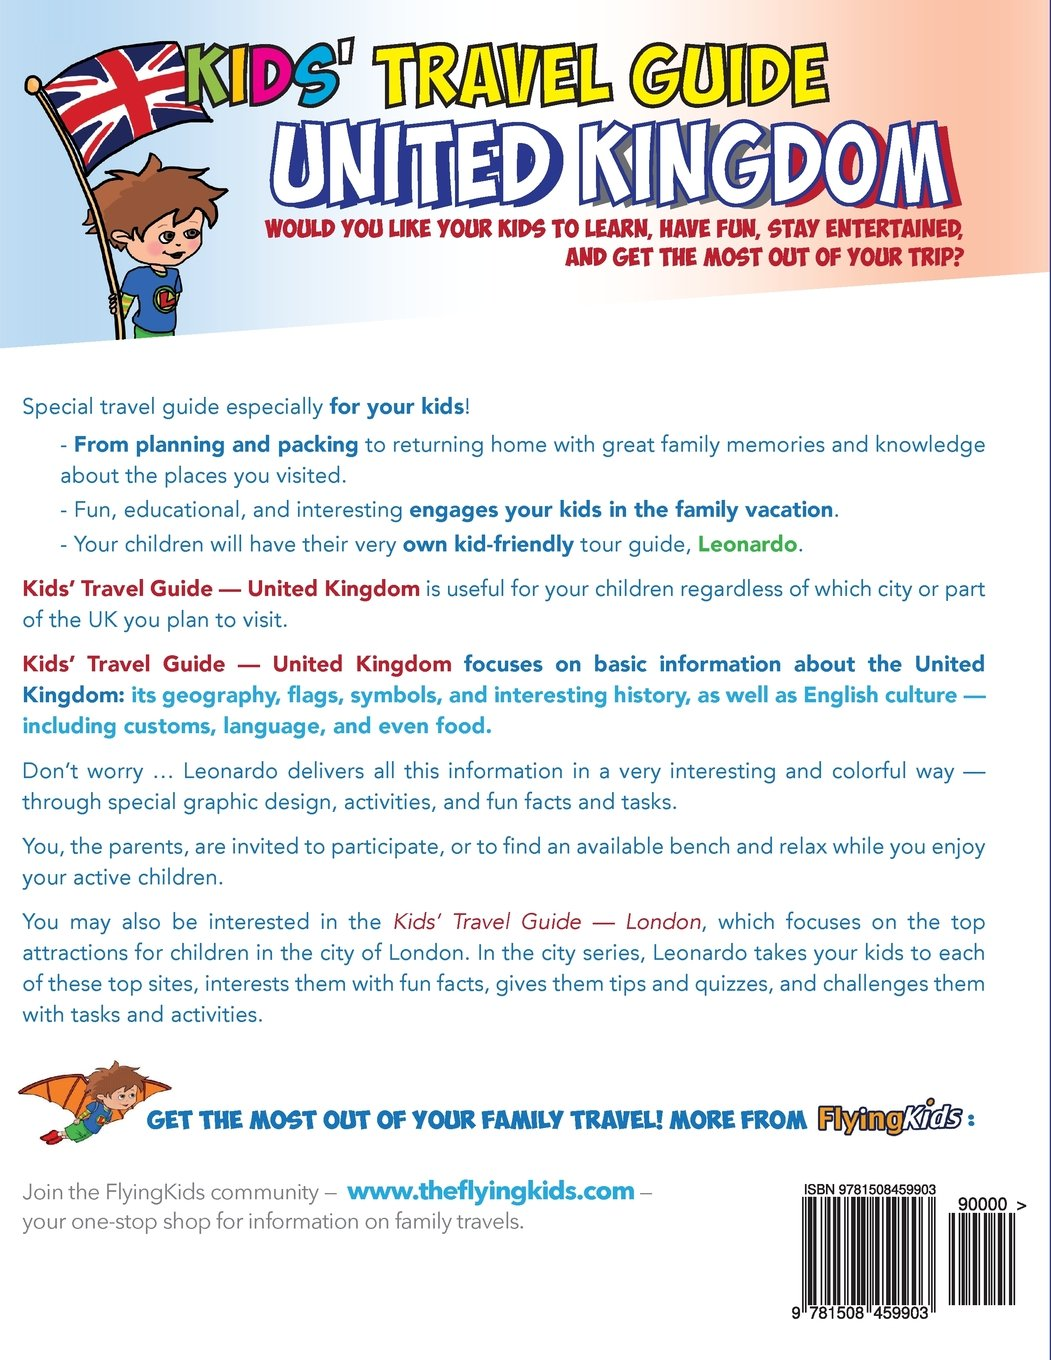 United Kingdom Facts and Culture